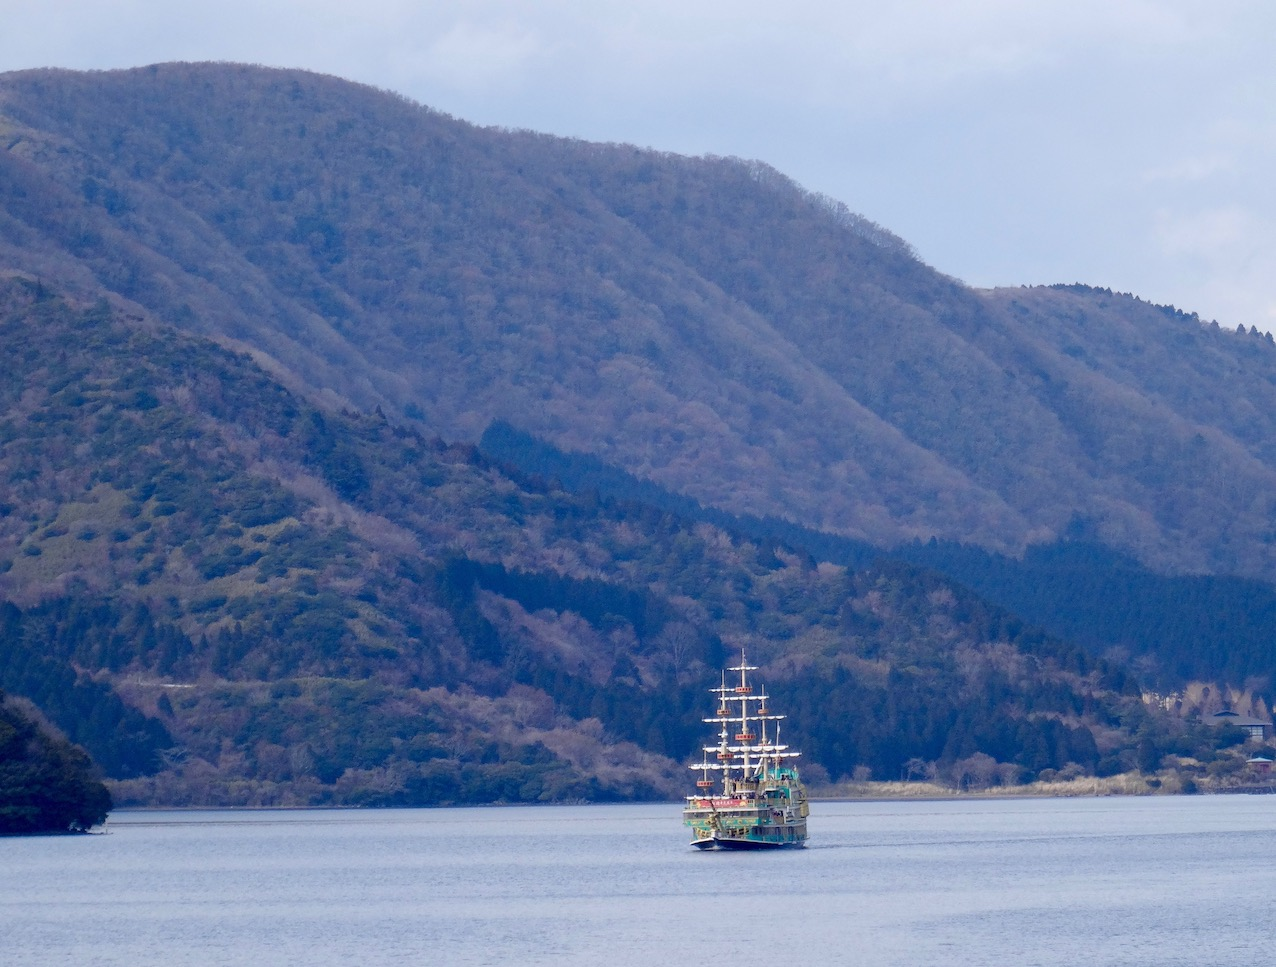 Boat cruise Lake Ashi Fuji-Hakone-Izu National Park.